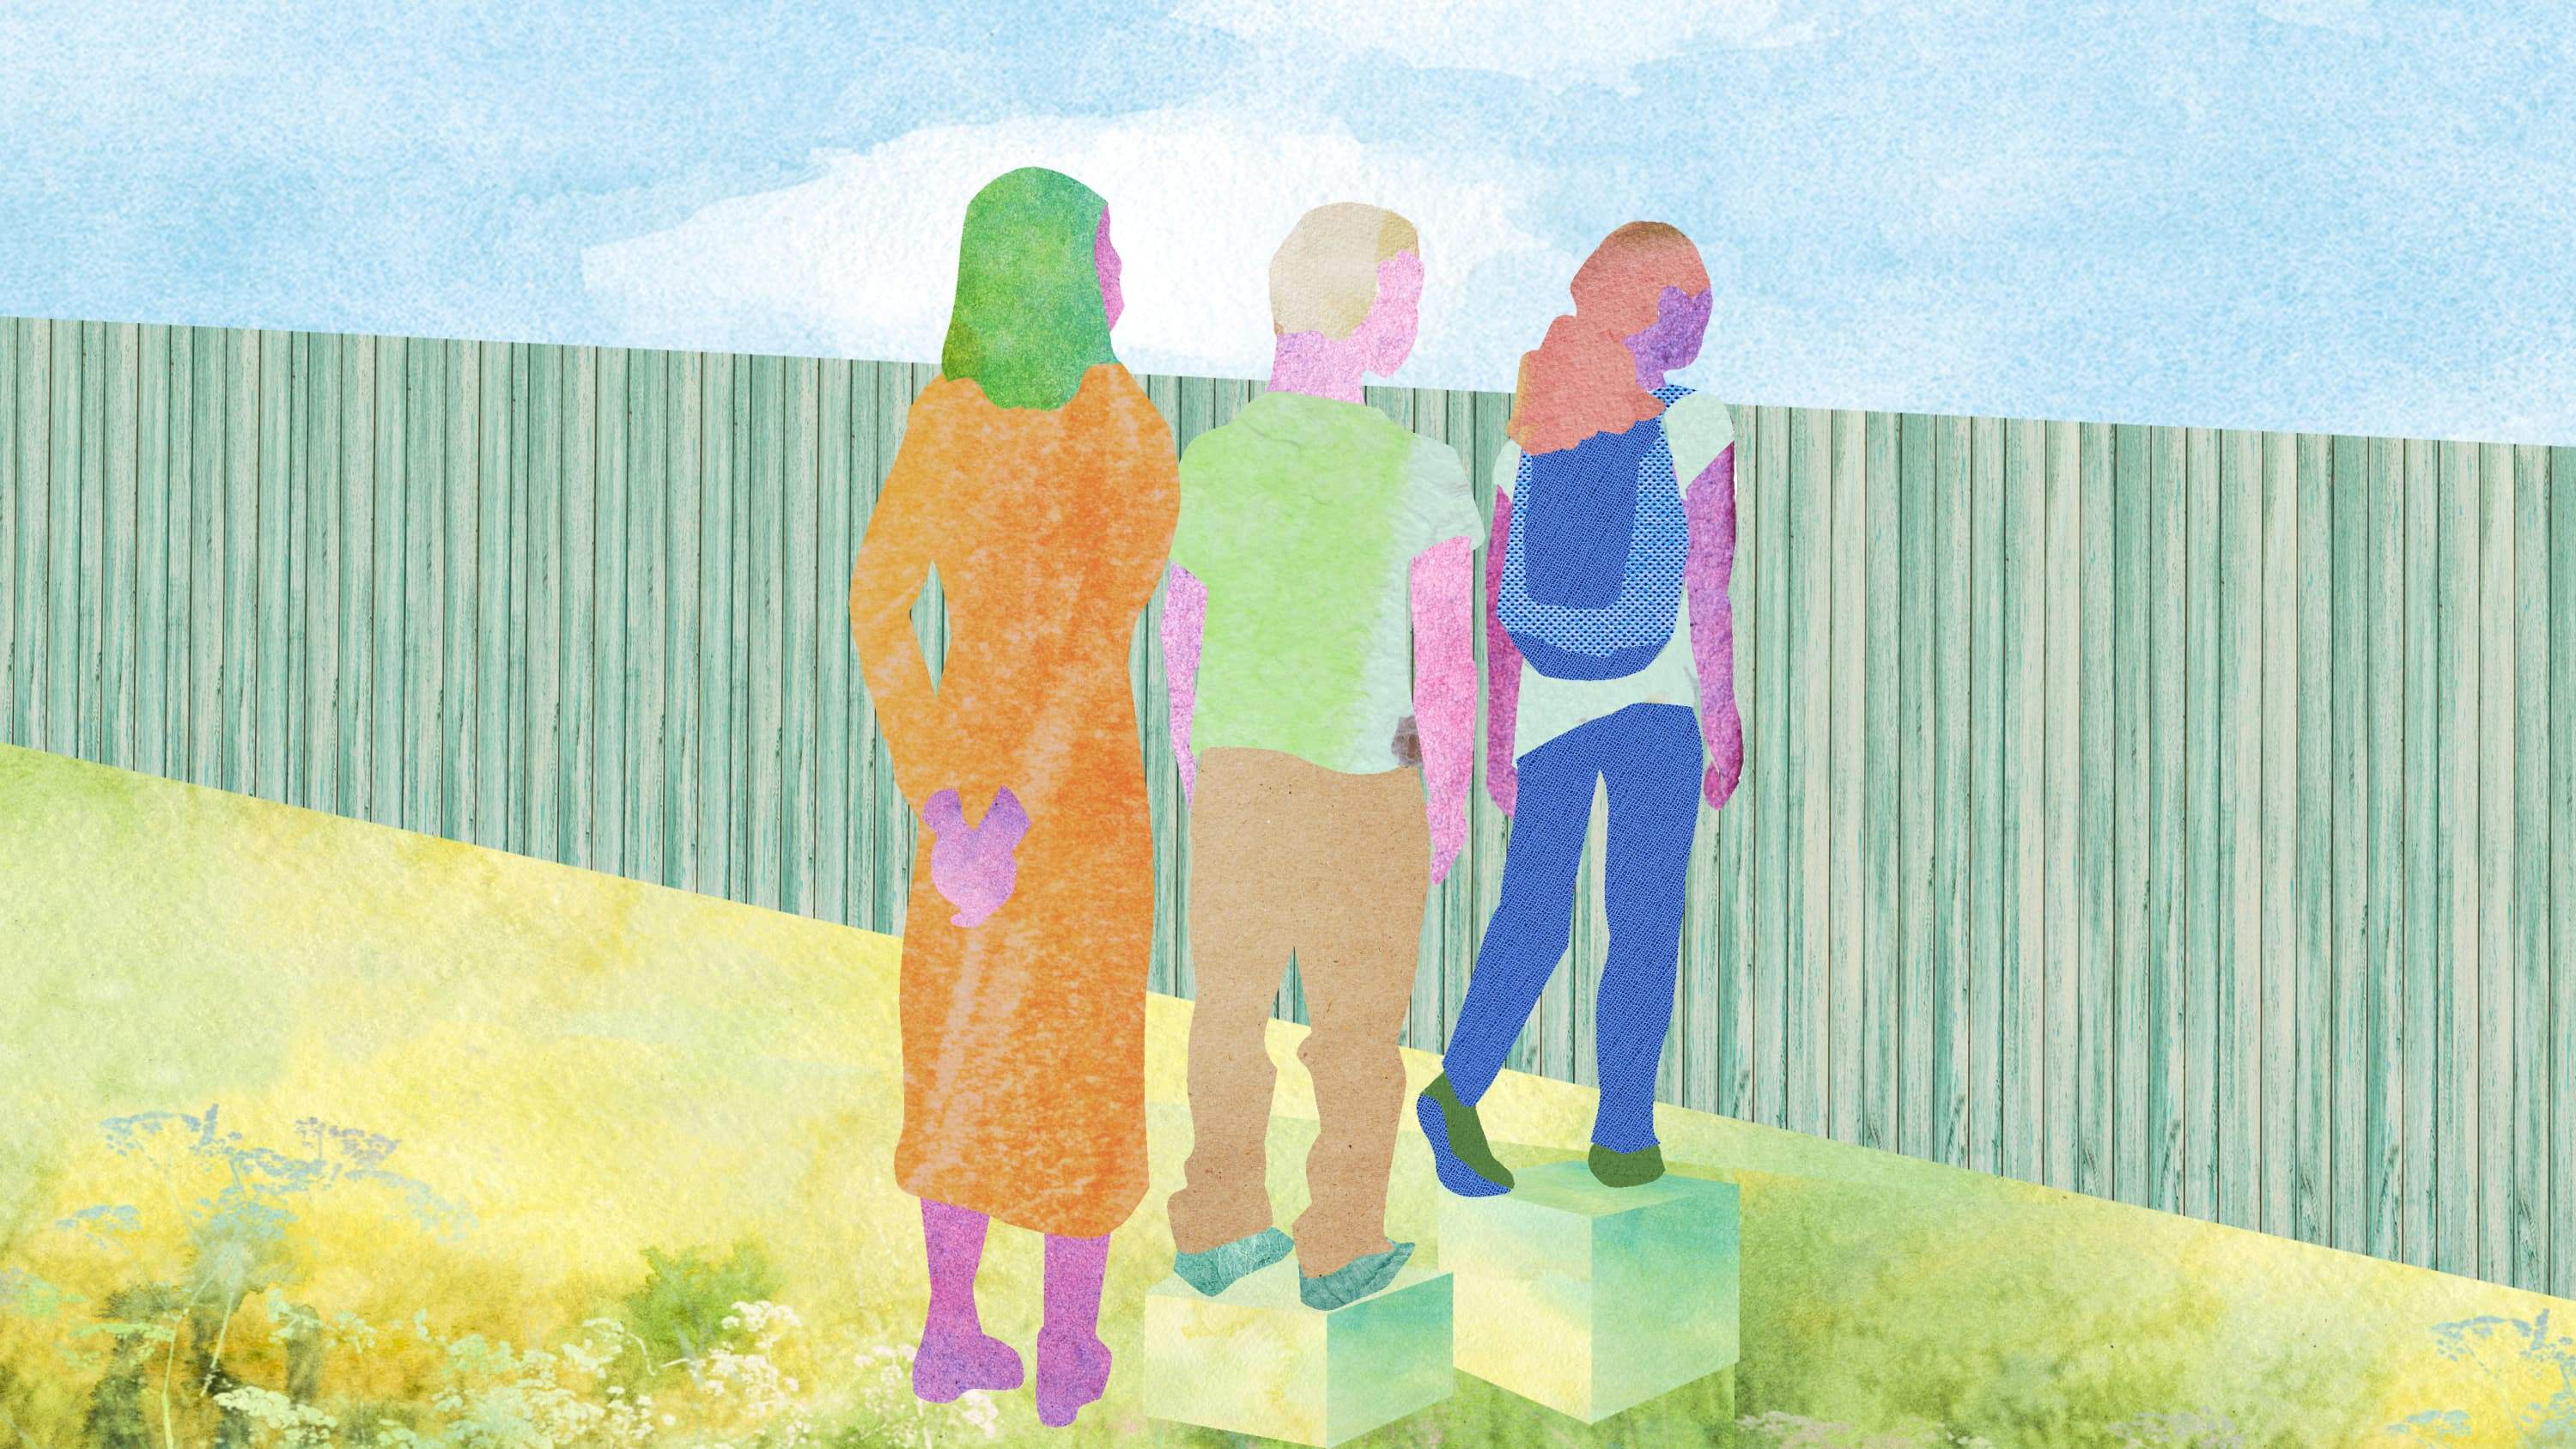 Illustration showing three people looking over a fence, representing health equity